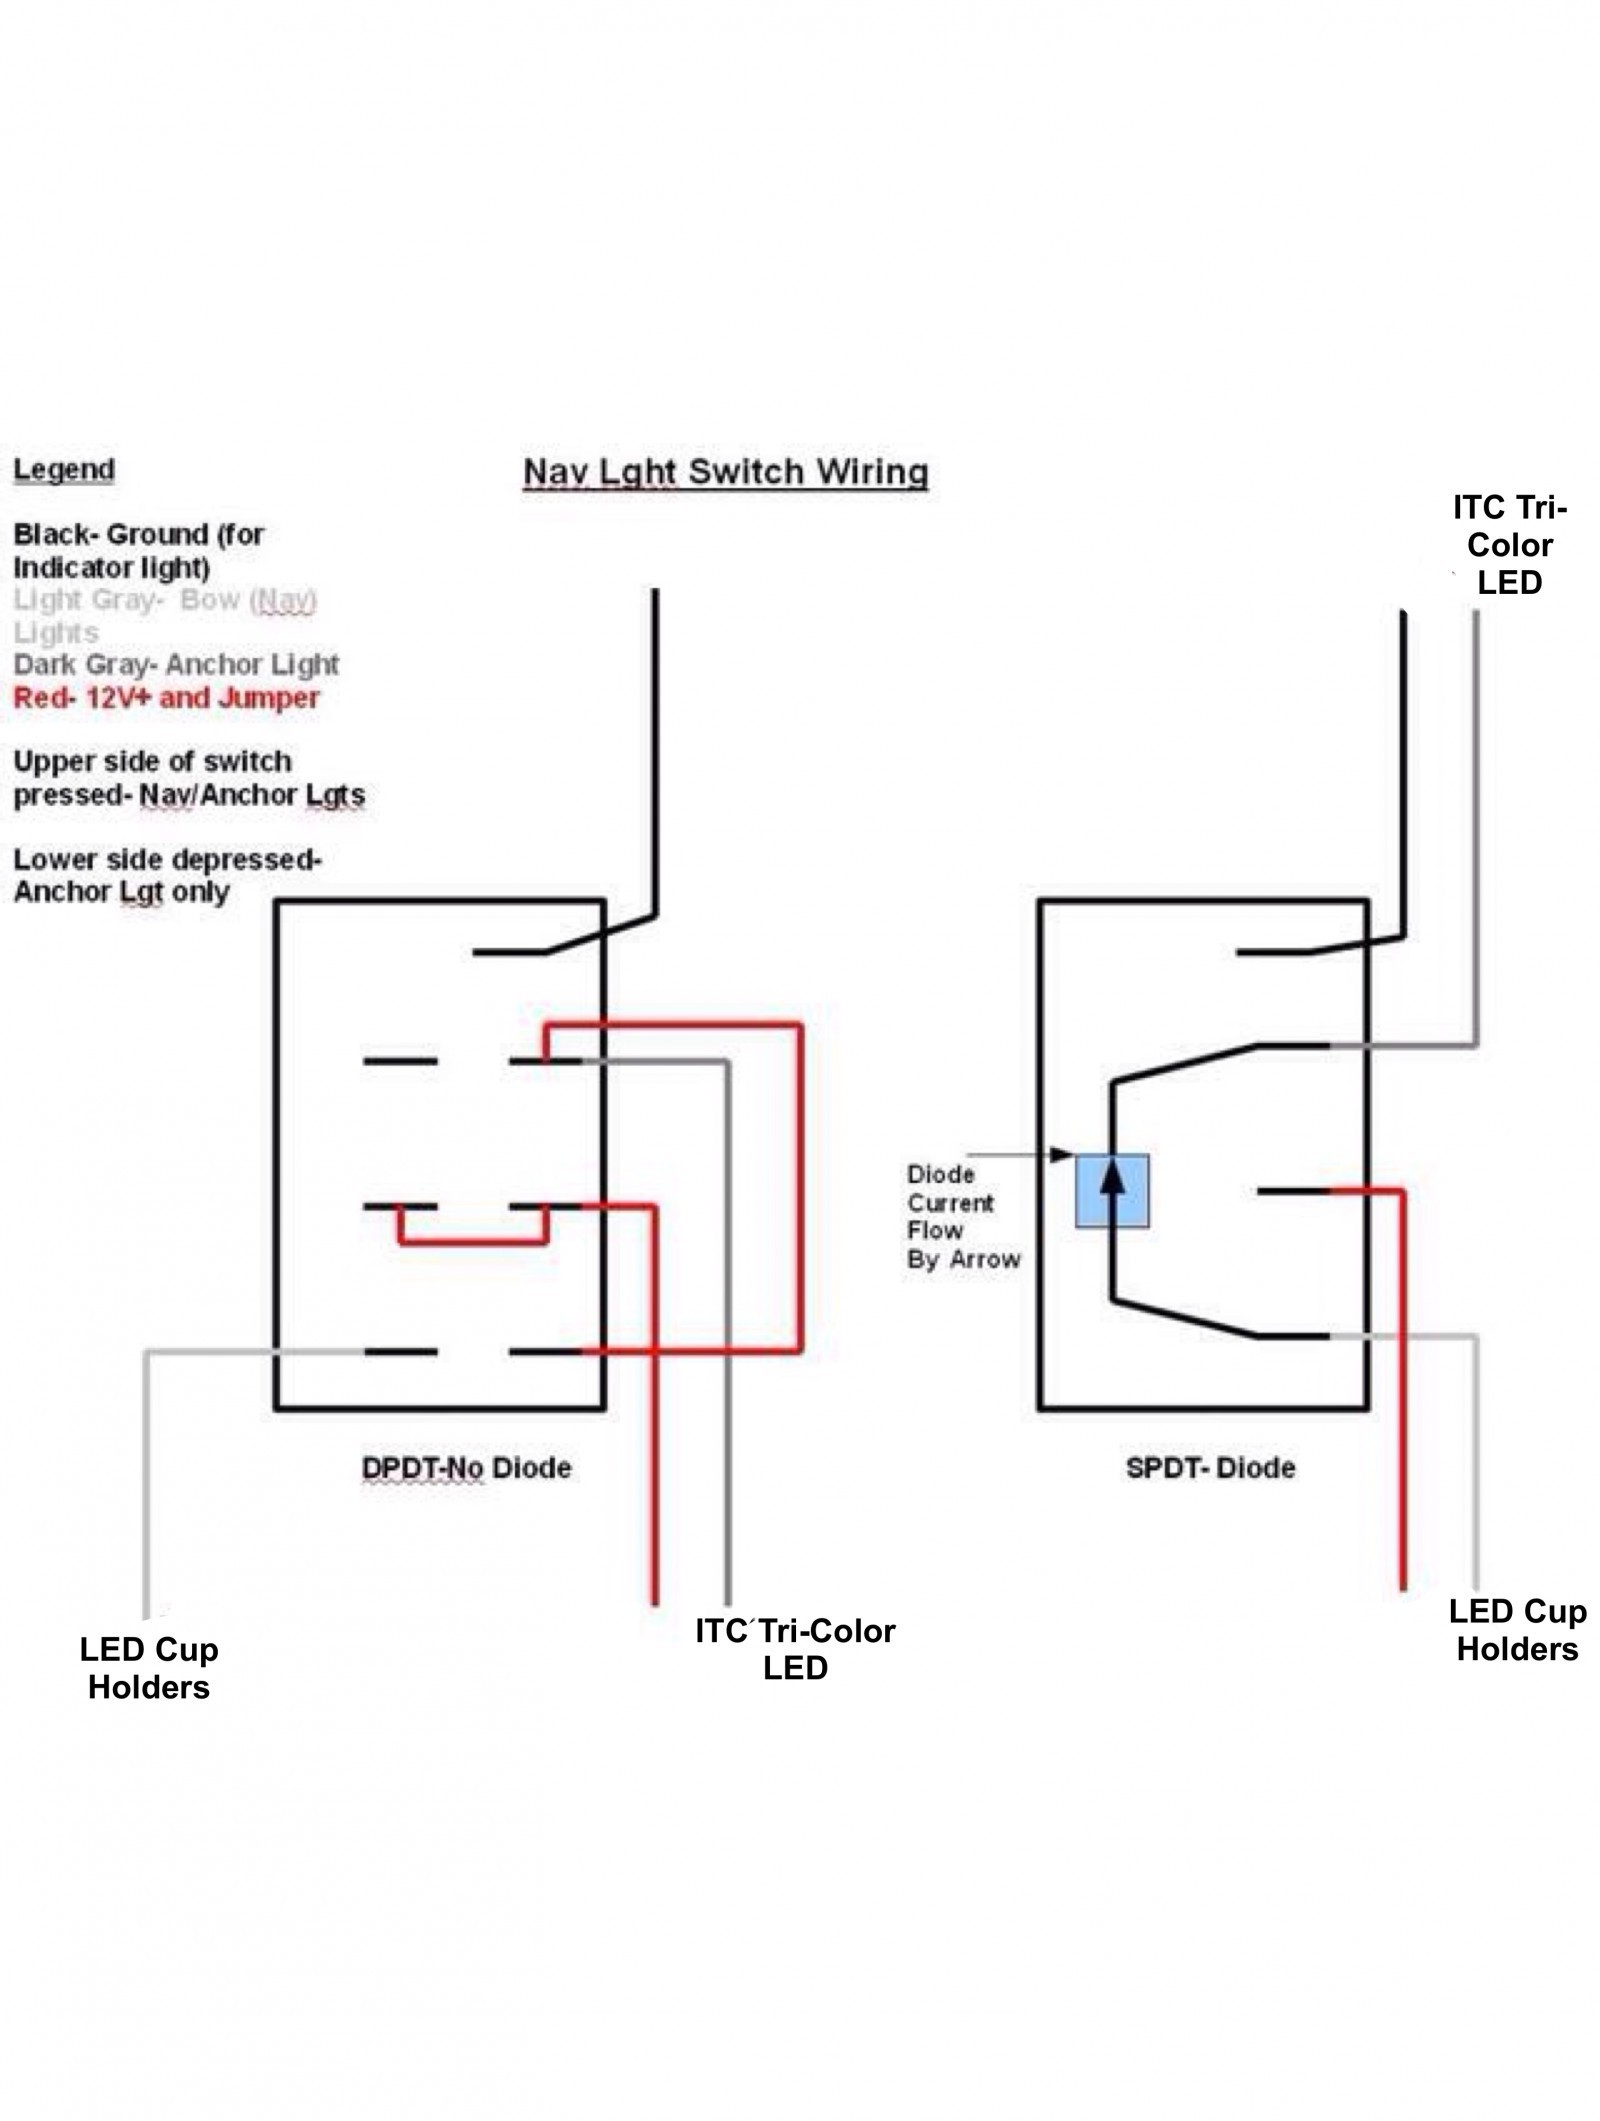 dual lite inverter wiring diagram Collection-dual lite inverter wiring diagram Download Wiring Diagram For Double Pole Light Switch Inspirationa 19 DOWNLOAD Wiring Diagram 7-f